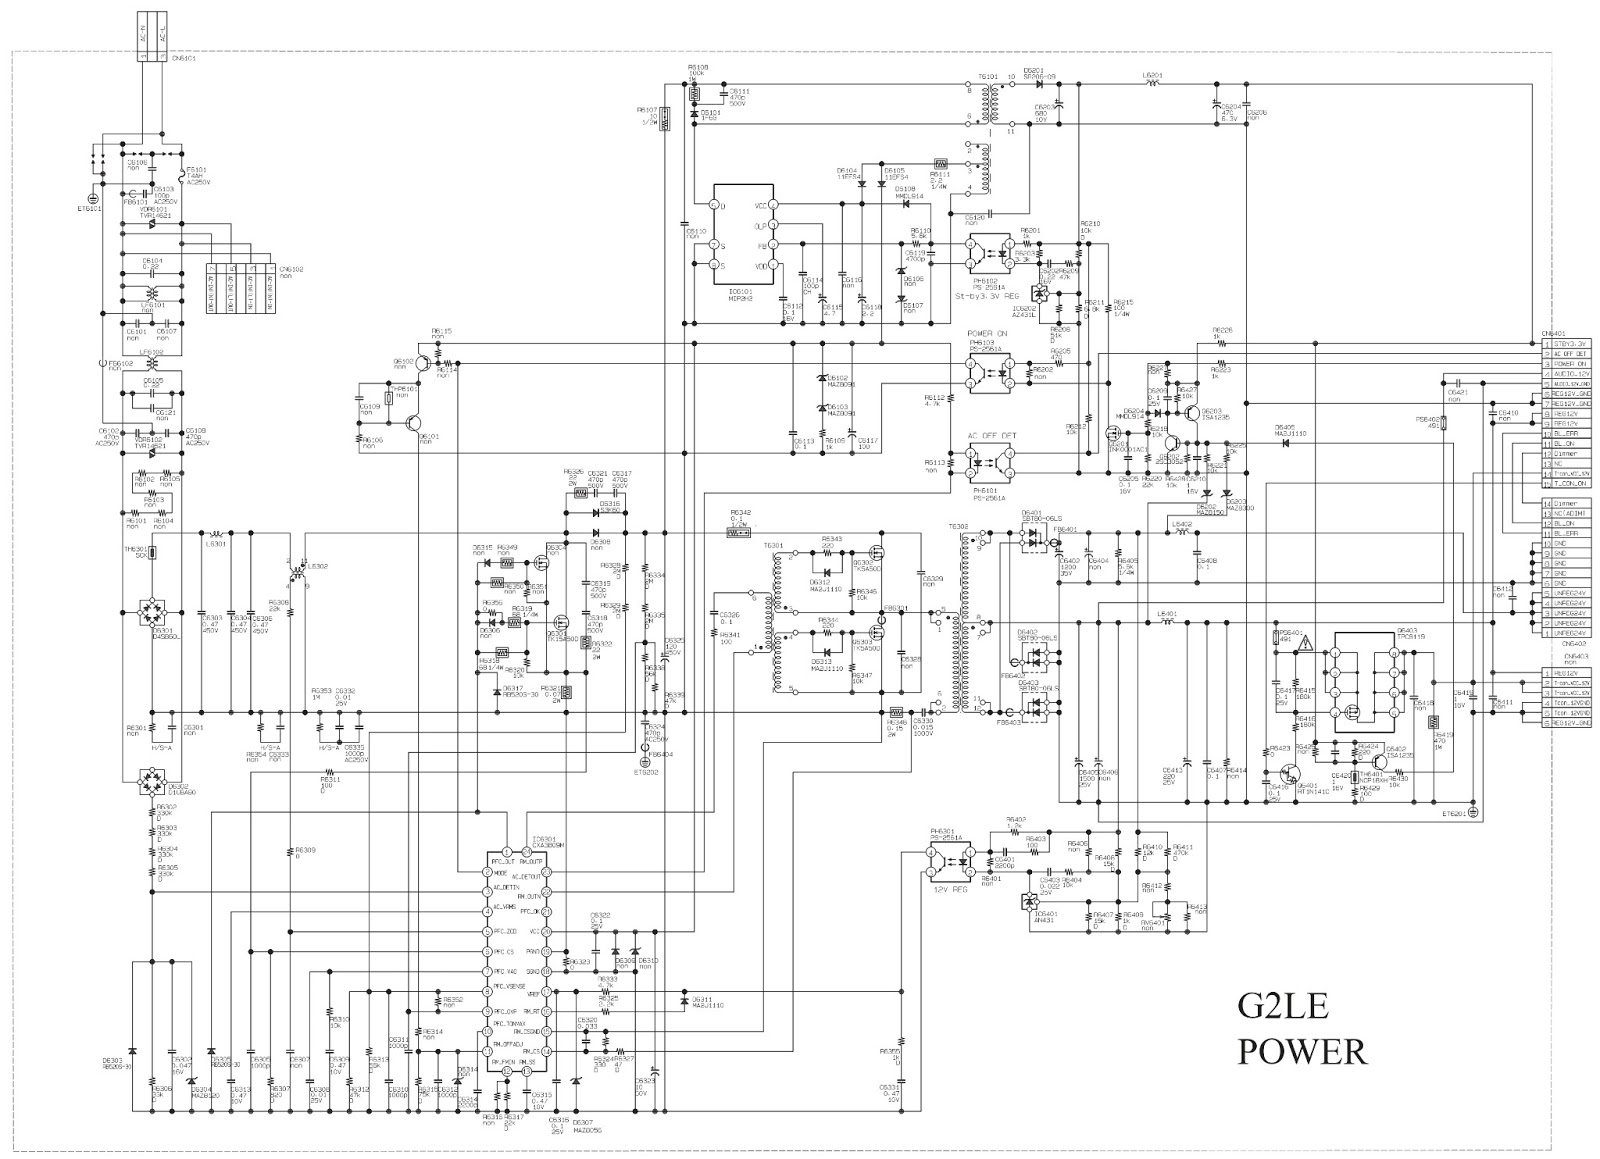 SONY KLV-32BX300 - KLV-40BX400 - MAIN POWER SMPS - SCHEMATIC DIAGRAM ...